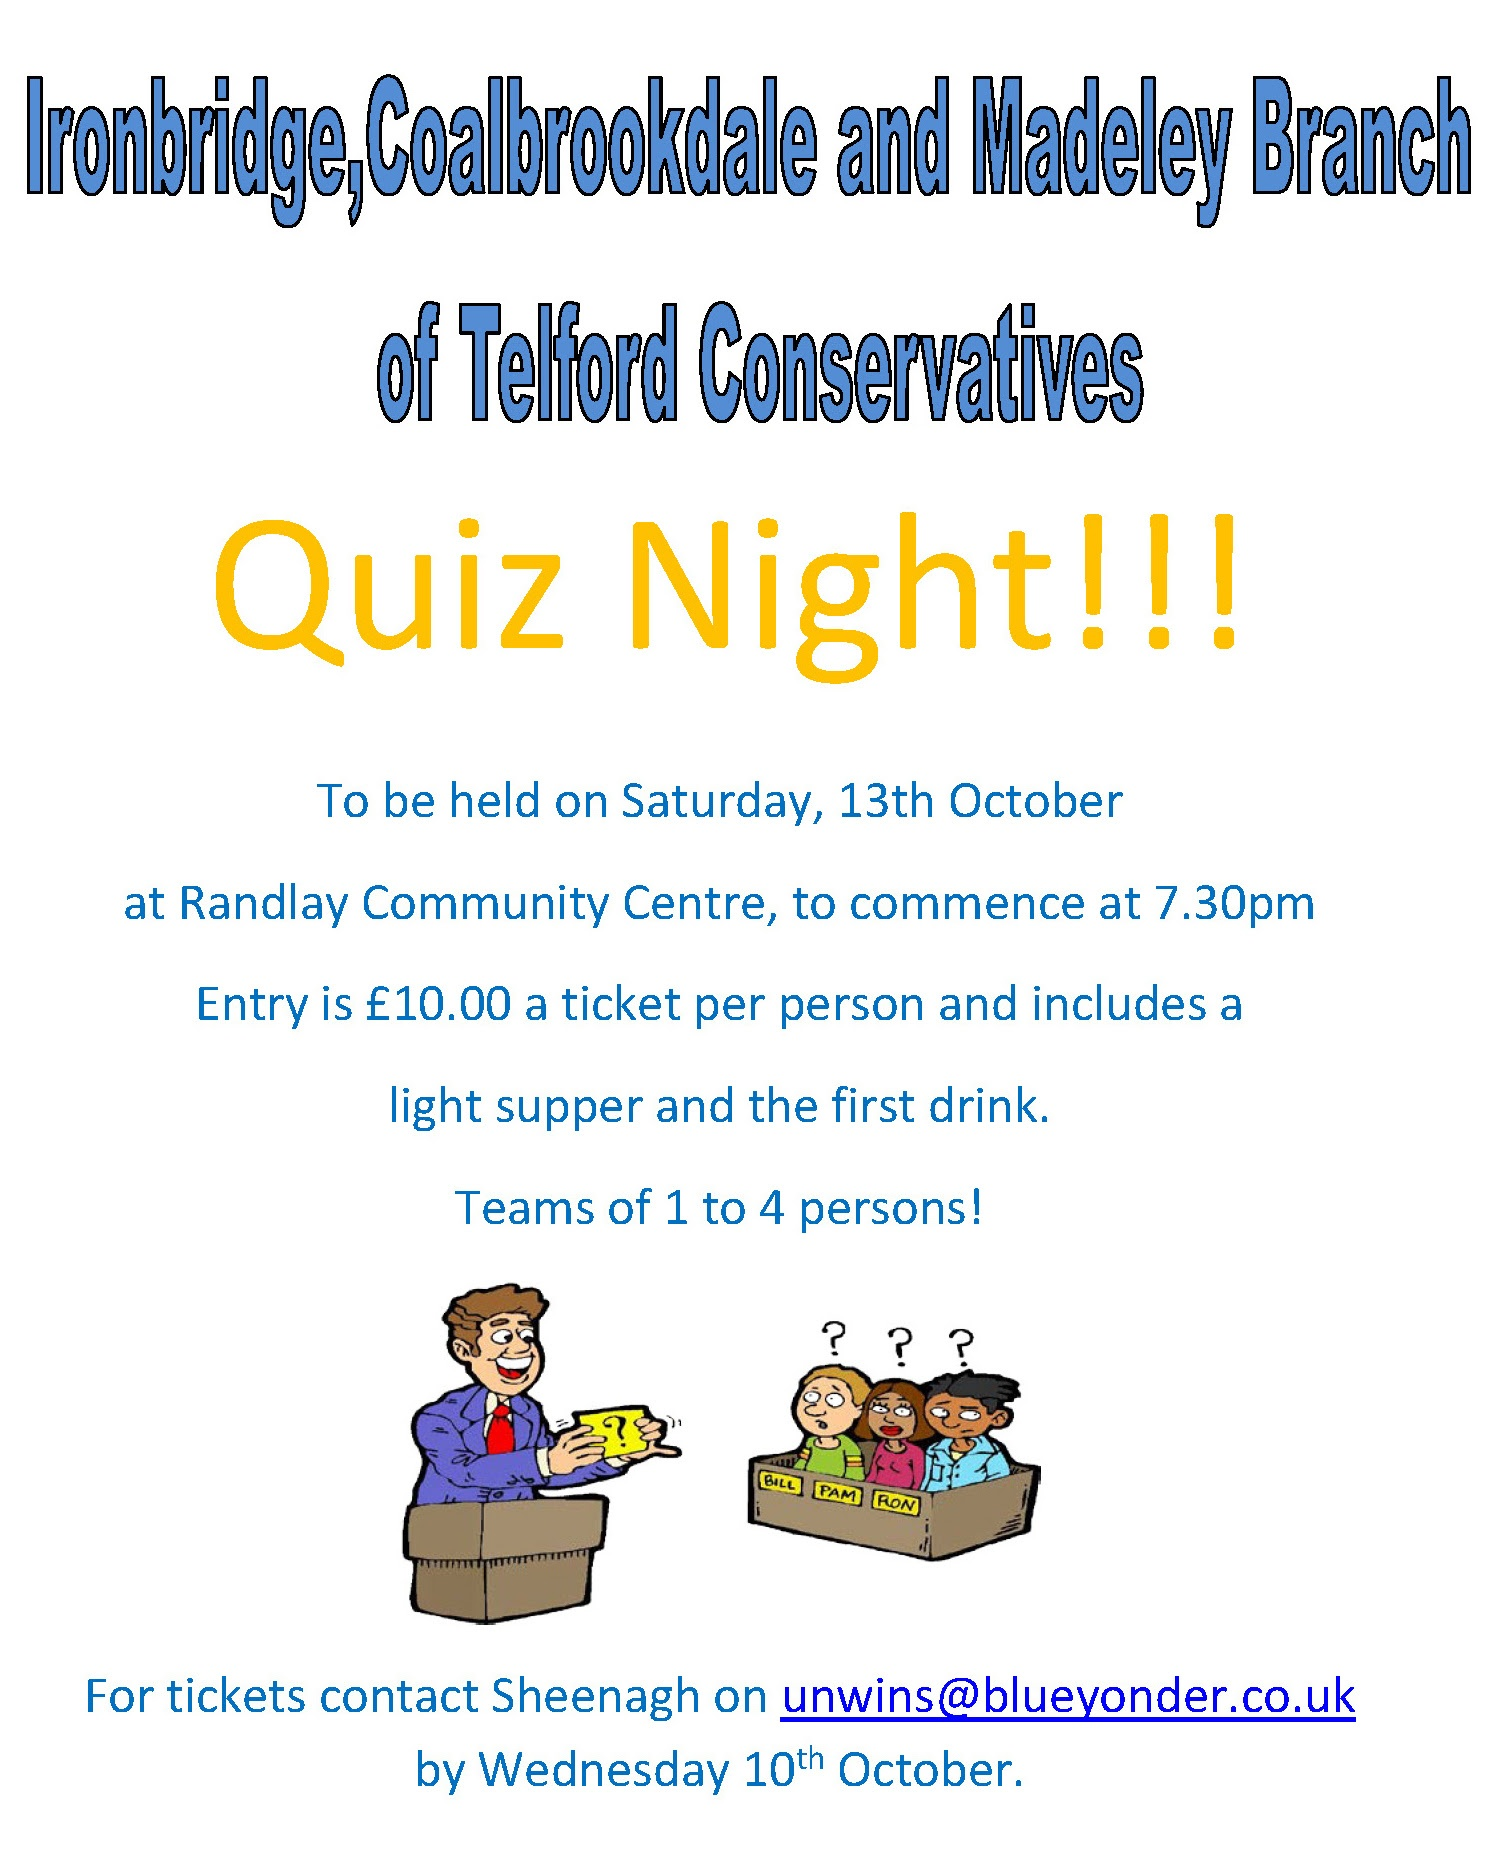 Quiz night details. For more info please email office@telfordconservatives.com